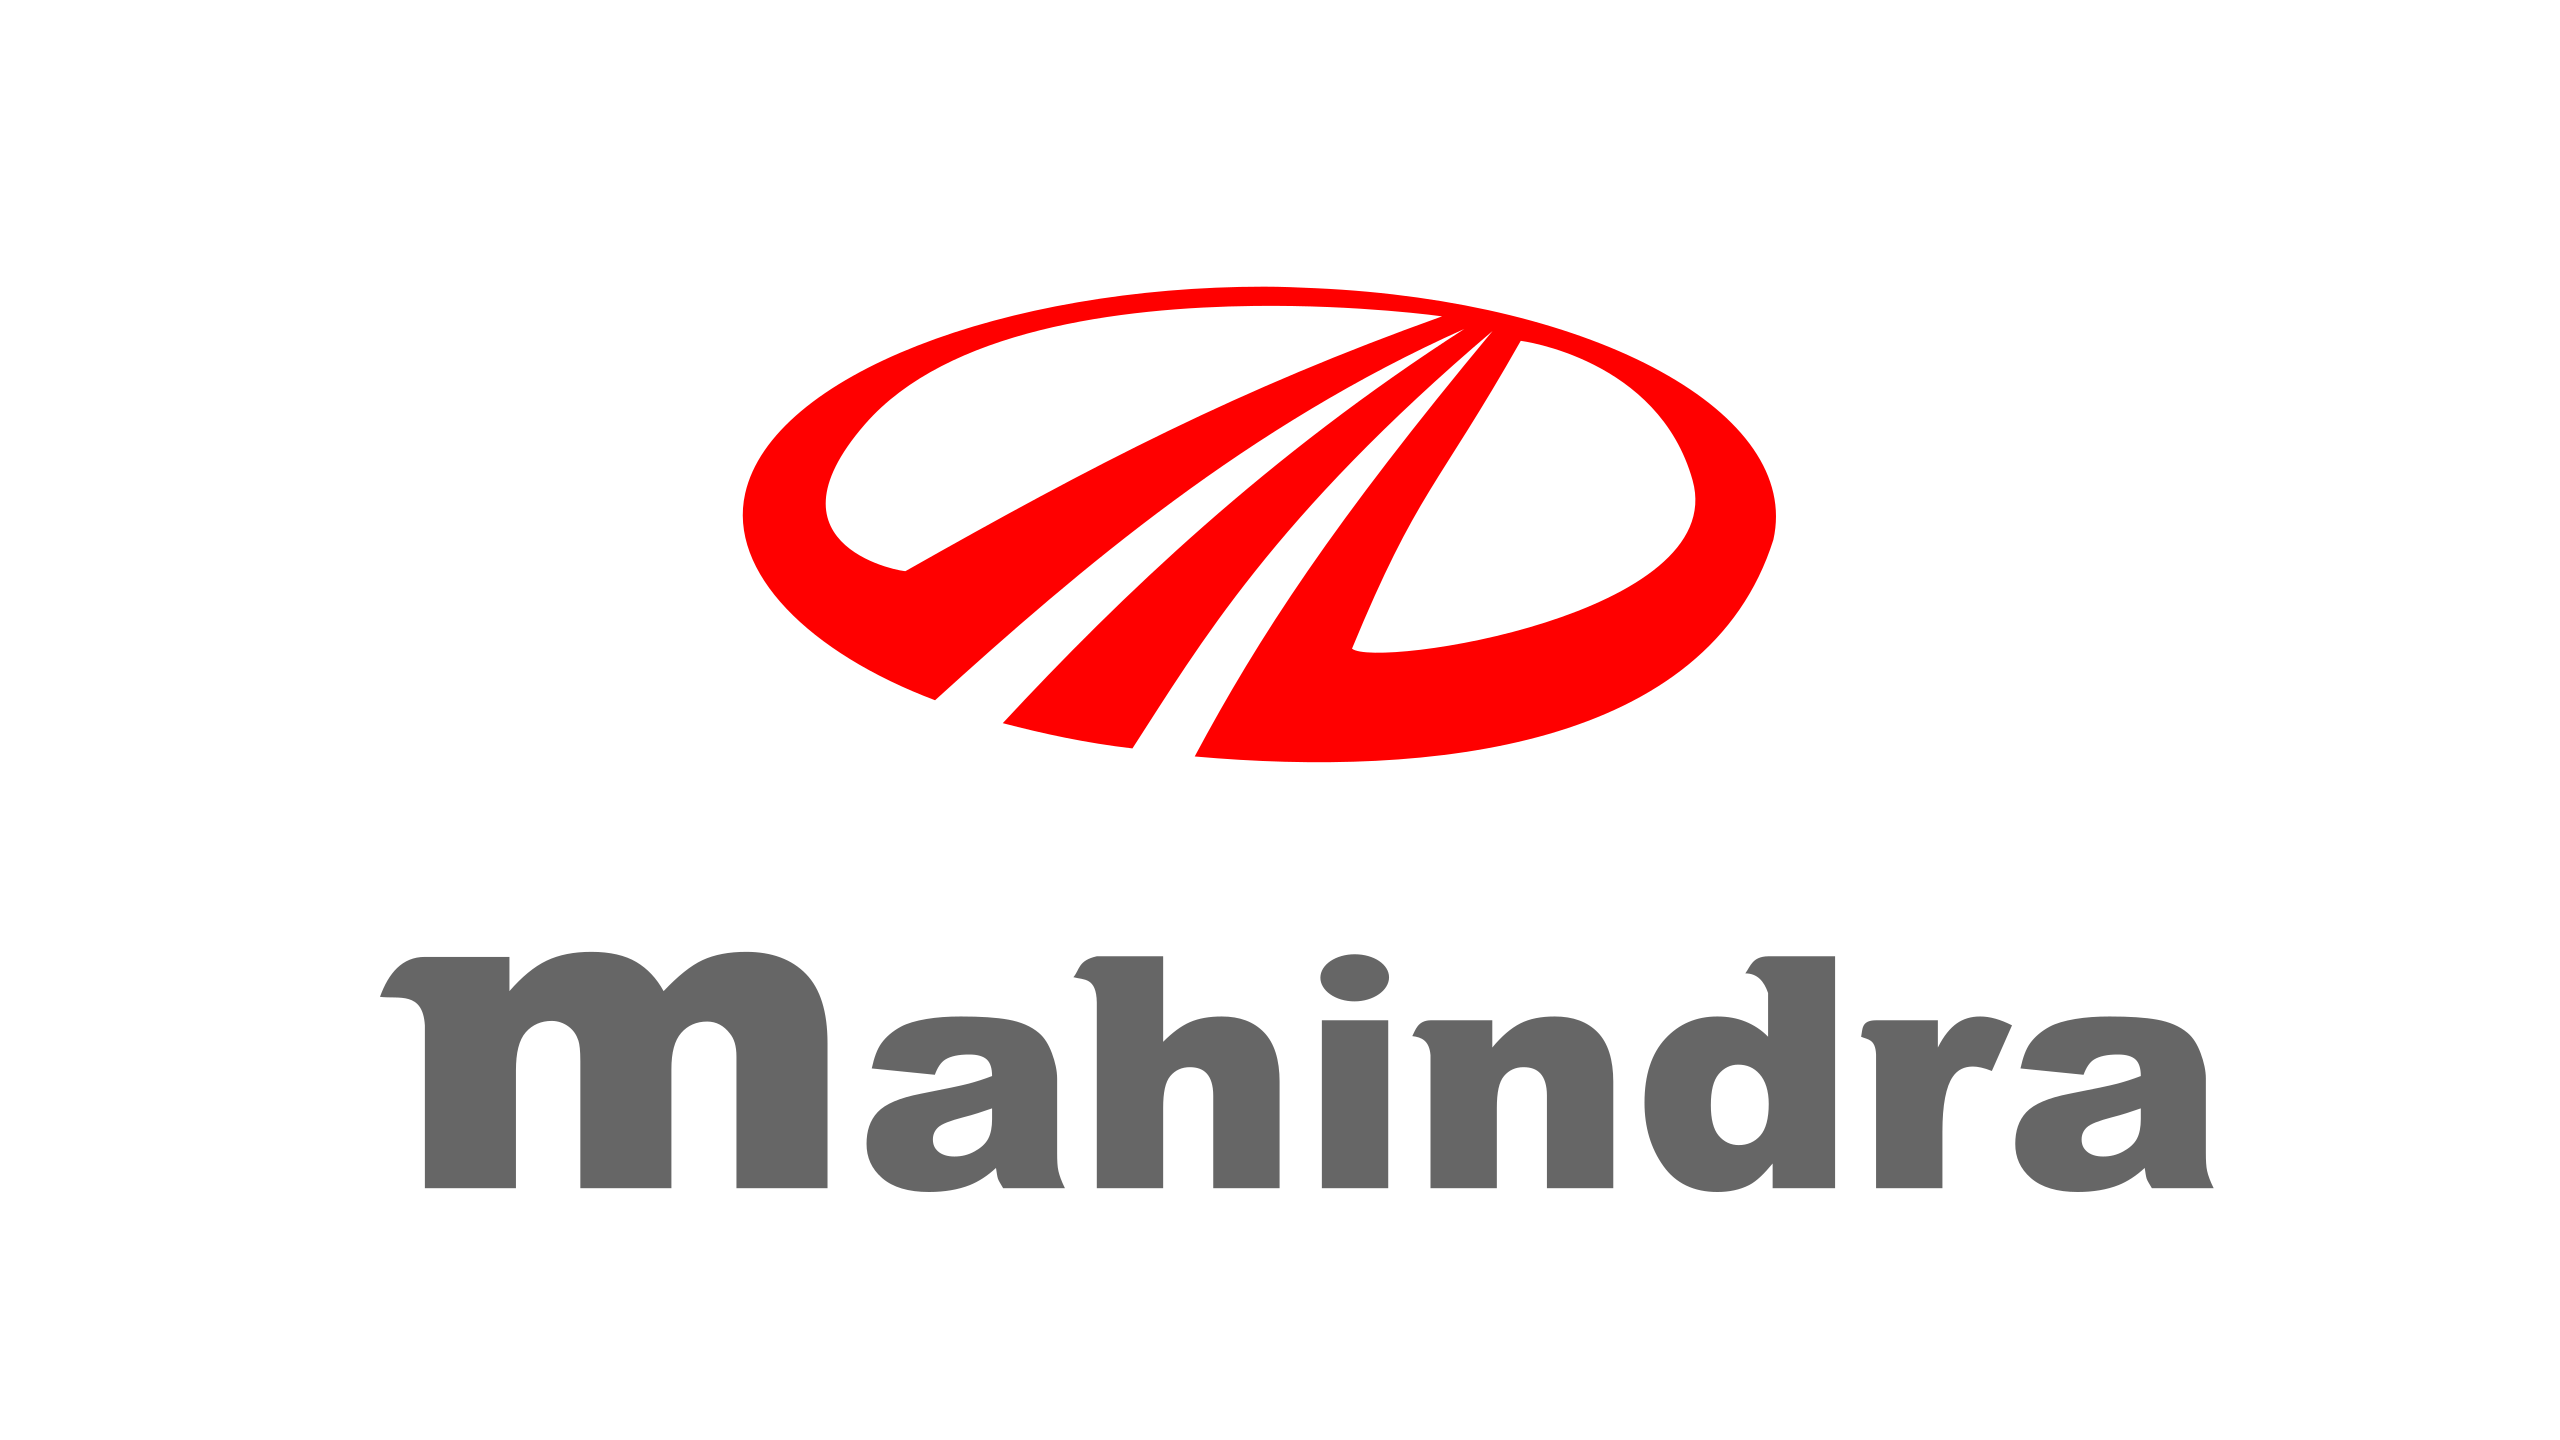 Mahindra launches a unique finance scheme for its PickUps and Small Commercial Vehicles in partnership with State Bank of India